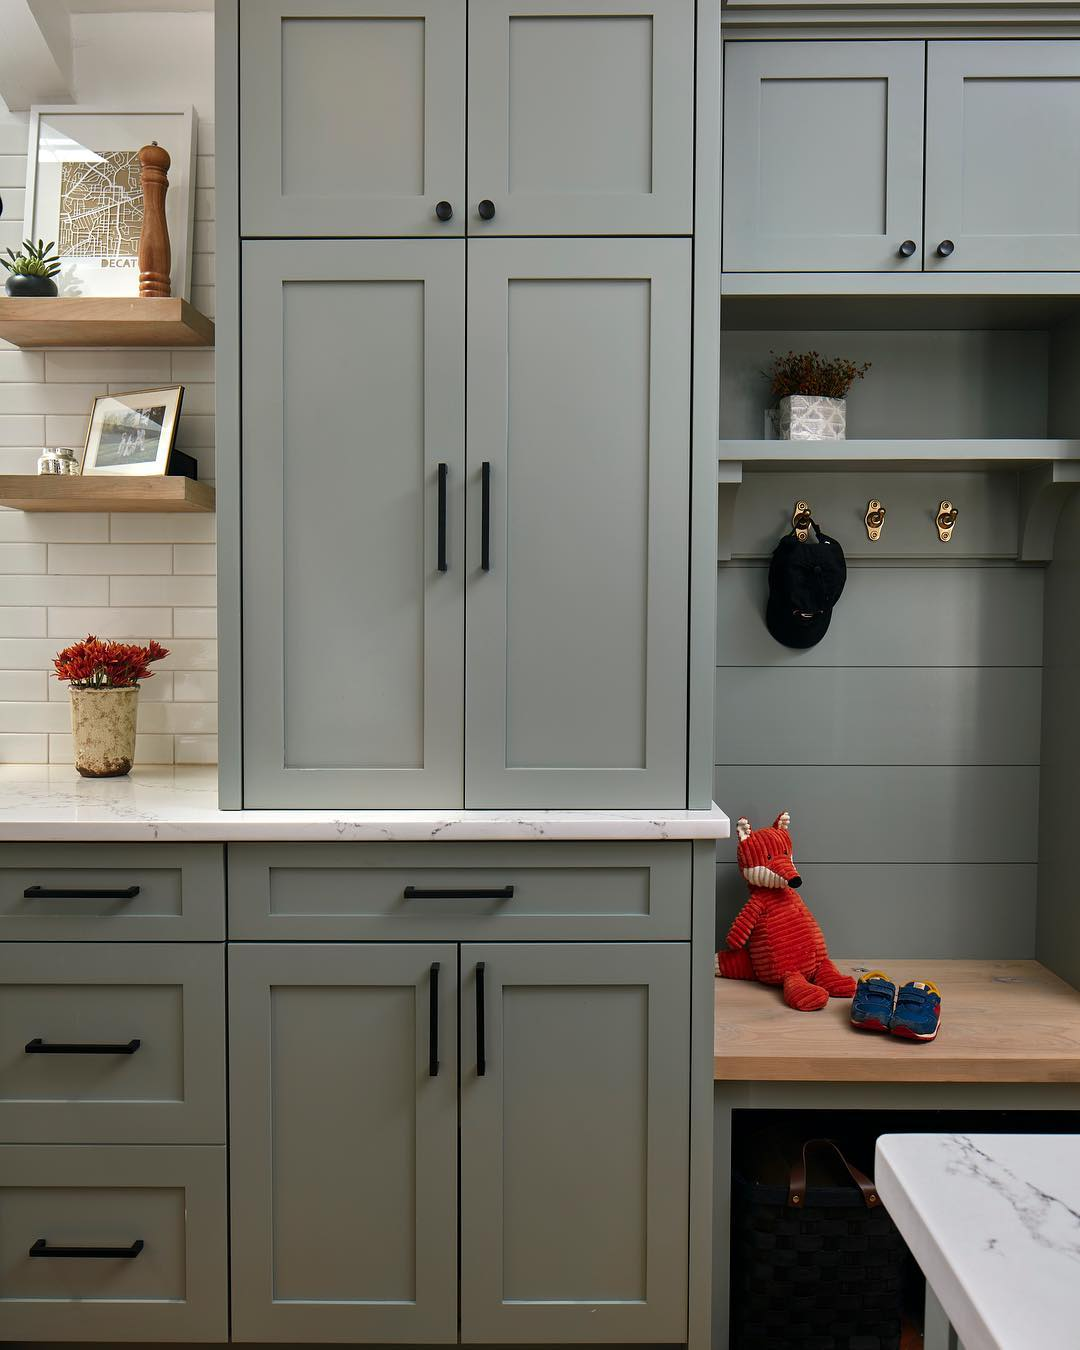 Timeless Kitchen With Old White Farrow And Ball On The: Switchsecuritycompanies